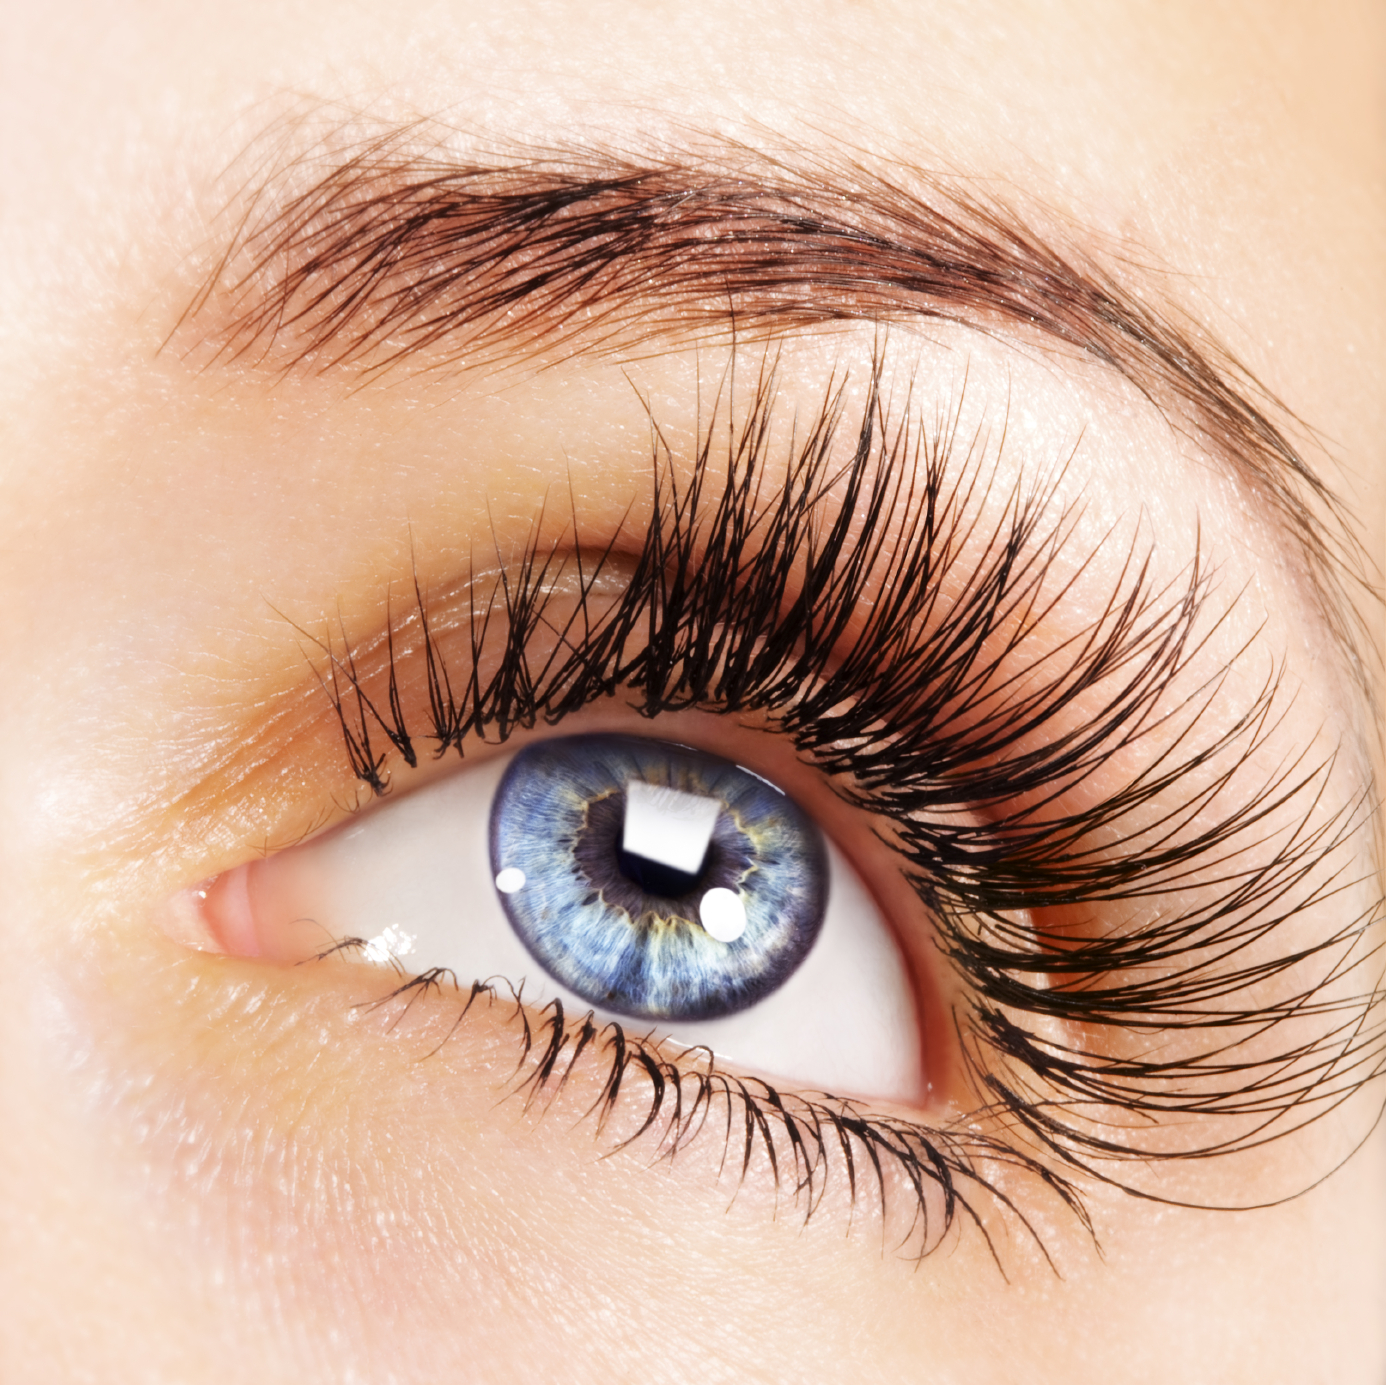 7.it makes your eyelashes and eyebrows thicker and longer